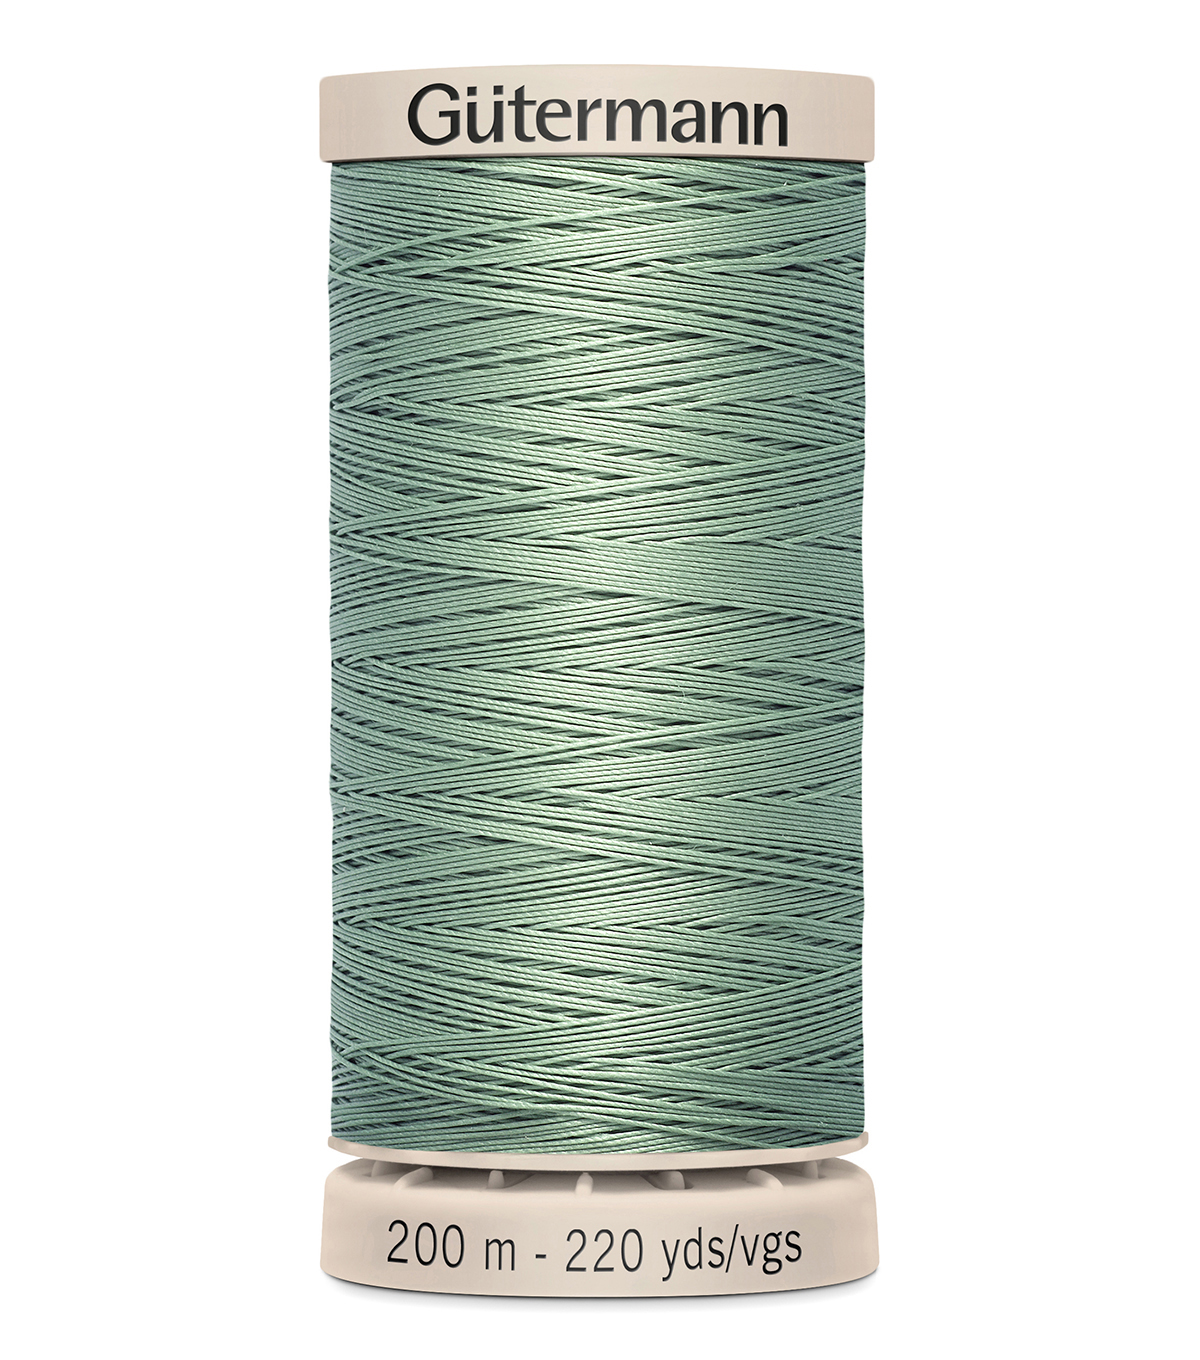 Gutermann Hand Quilting Thread 200 Meters (220 Yrds)-Primary, Light Green #8816